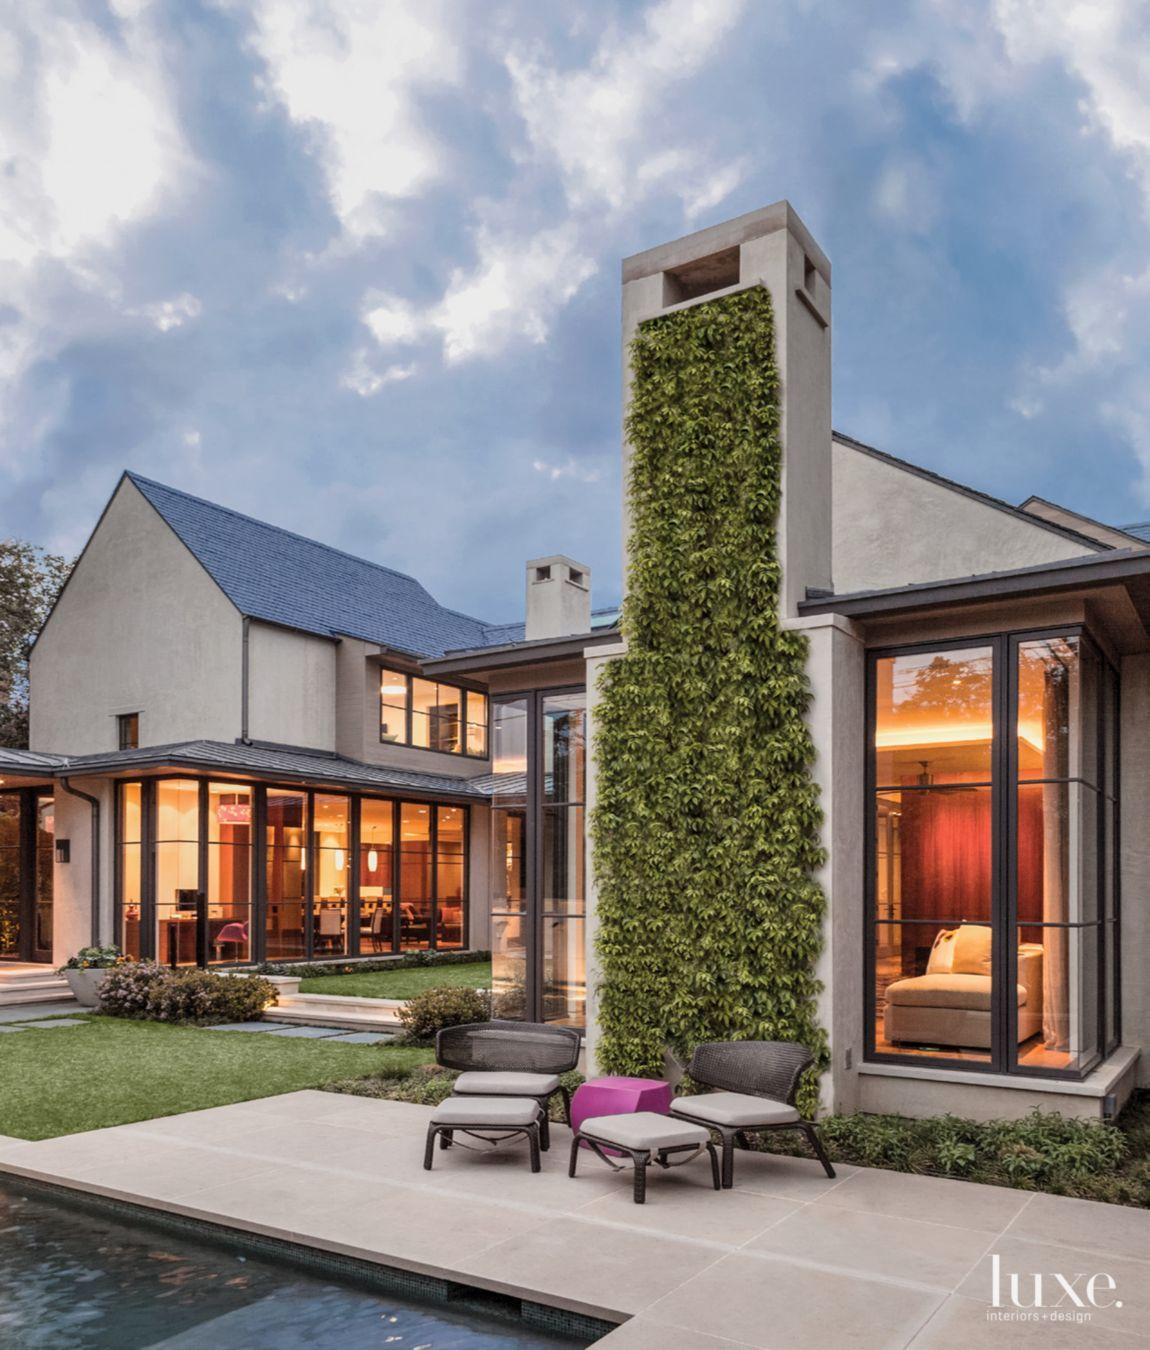 Exterior House Designs Exterior Modern With Concrete Patio: Smooth Troweled Cement Plaster And A Slate Roof Define The